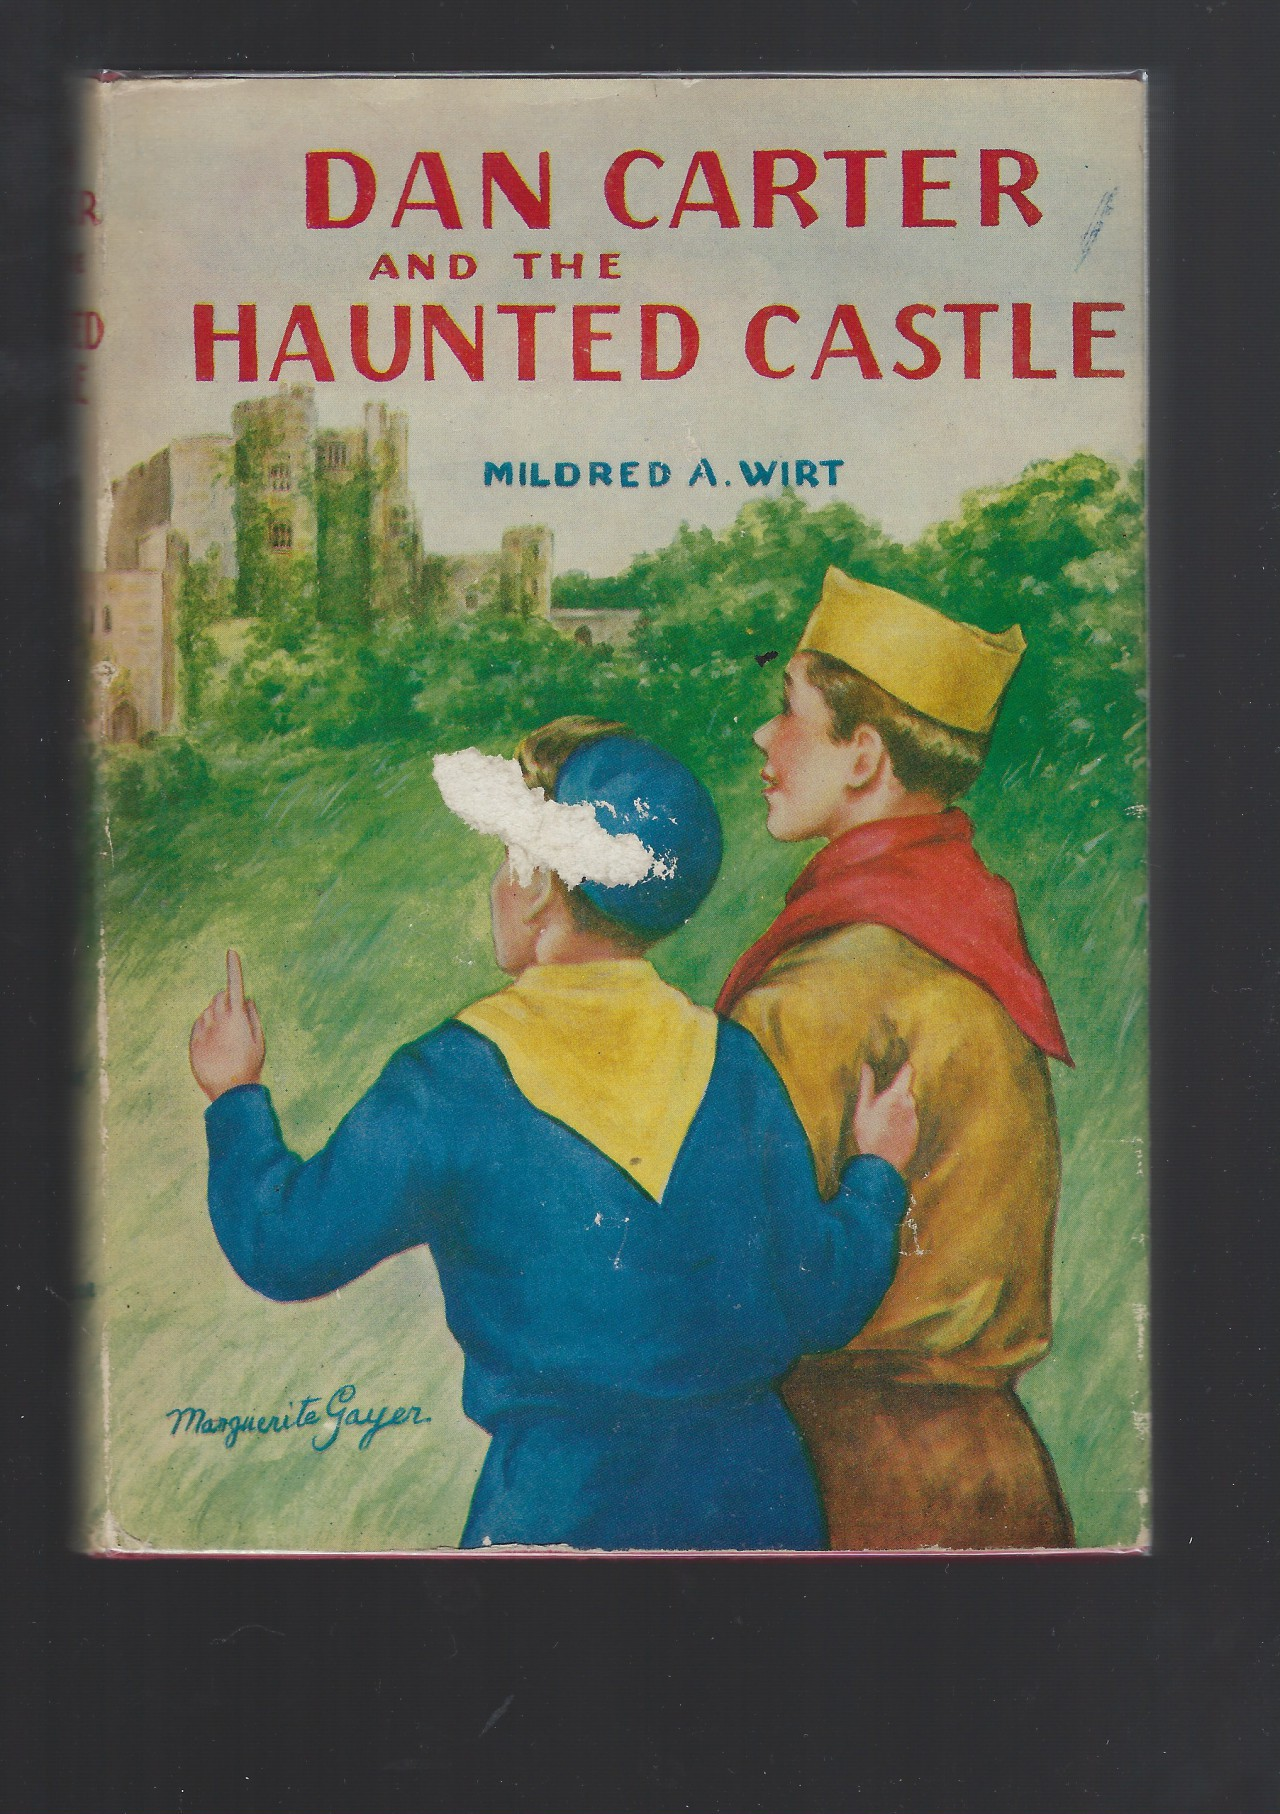 Dan Carter and the Haunted Castle #4 HB/DJ Mildred Wirt Nancy Drew Author, Mildred A Wirt